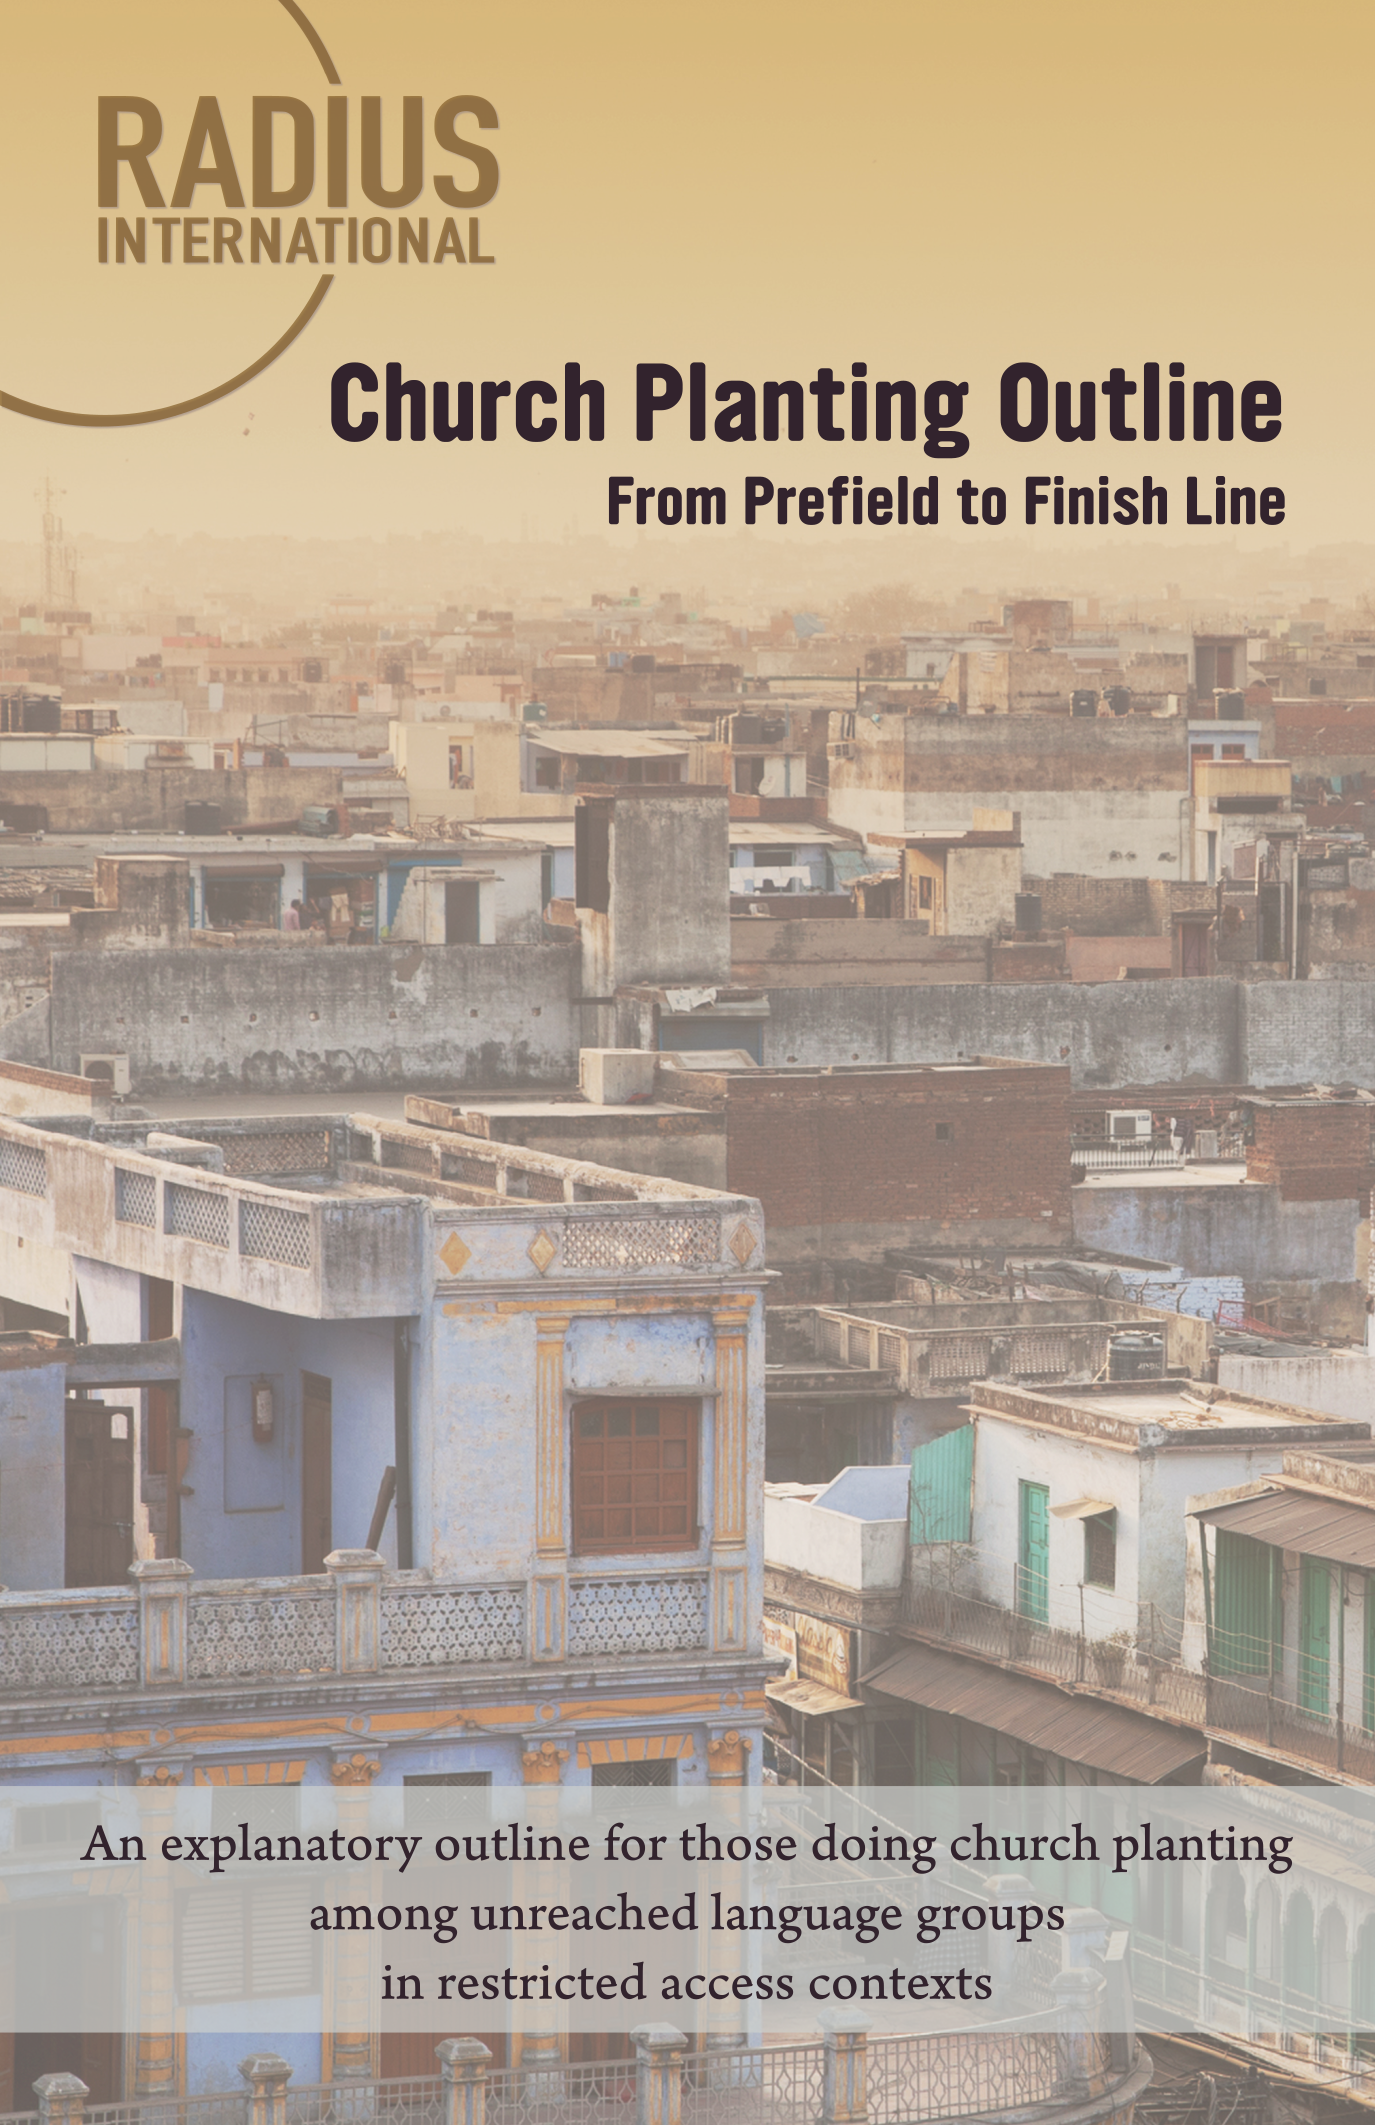 Radius' Church Planting Outline